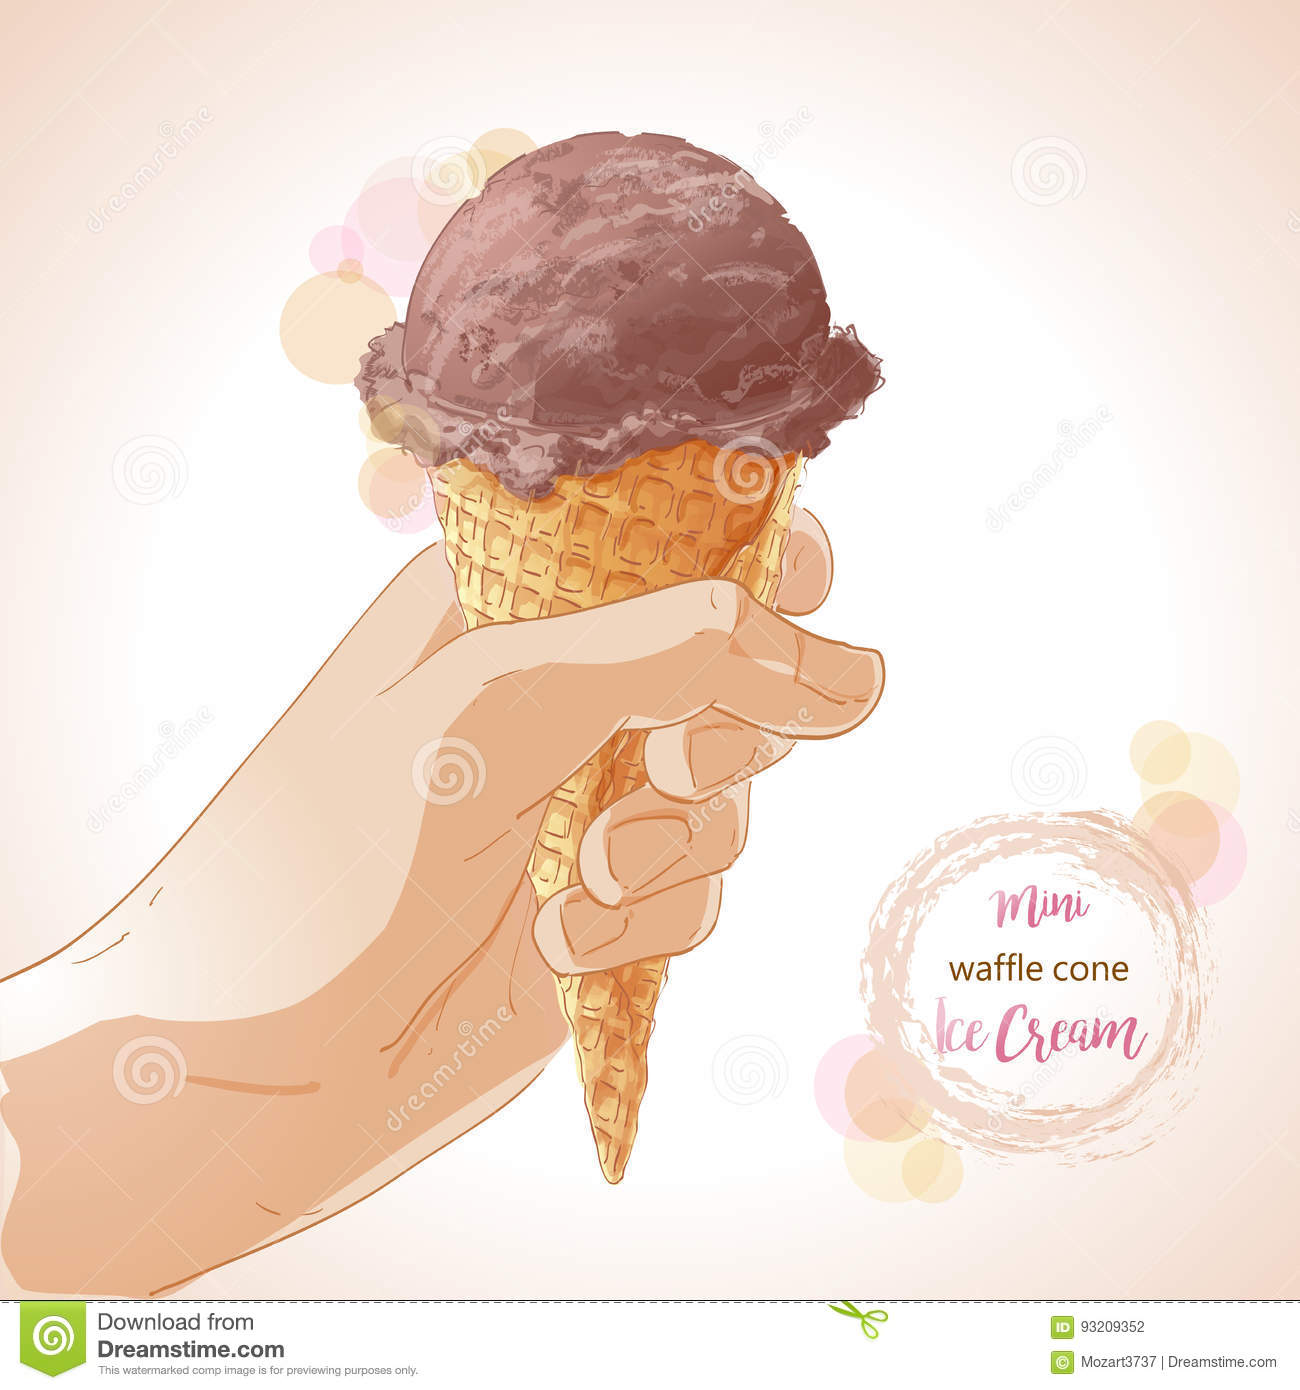 a3799cd1a68 Hand holding tasty ice cream in waffle cone. Vector watercolor illustration.  Isolated objects on a white background